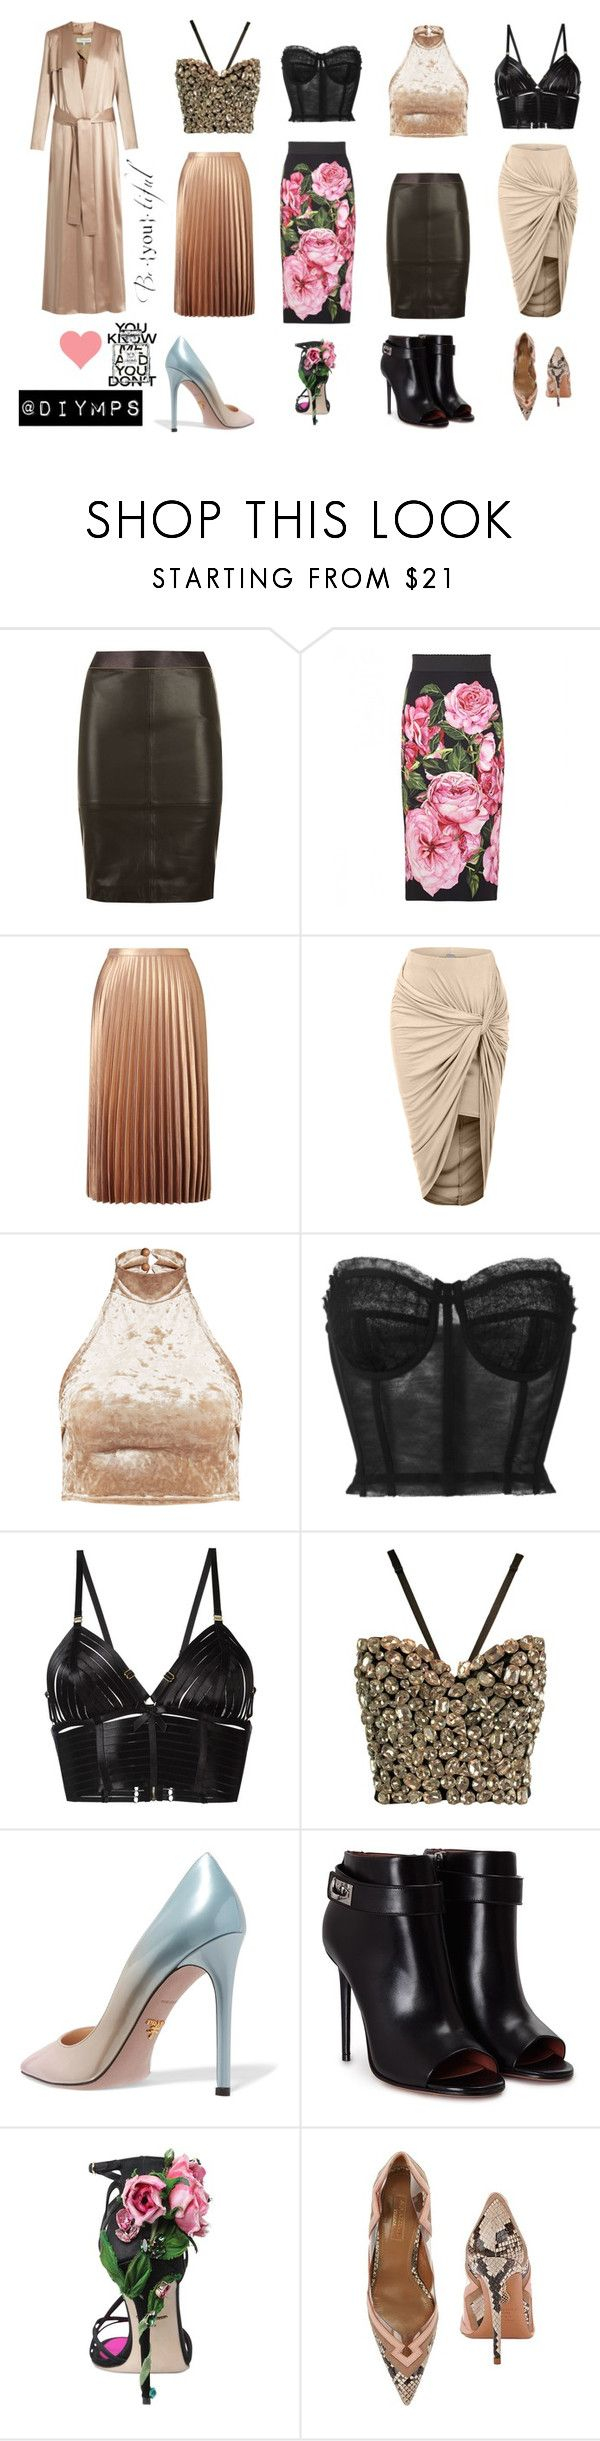 """""""Today's outfits"""" by diymps on Polyvore featuring Reiss, Dolce&Gabbana, Miss Selfridge, LE3NO, Bordelle, Prada, Givenchy, Aquazzura, Galvan and Chanel"""